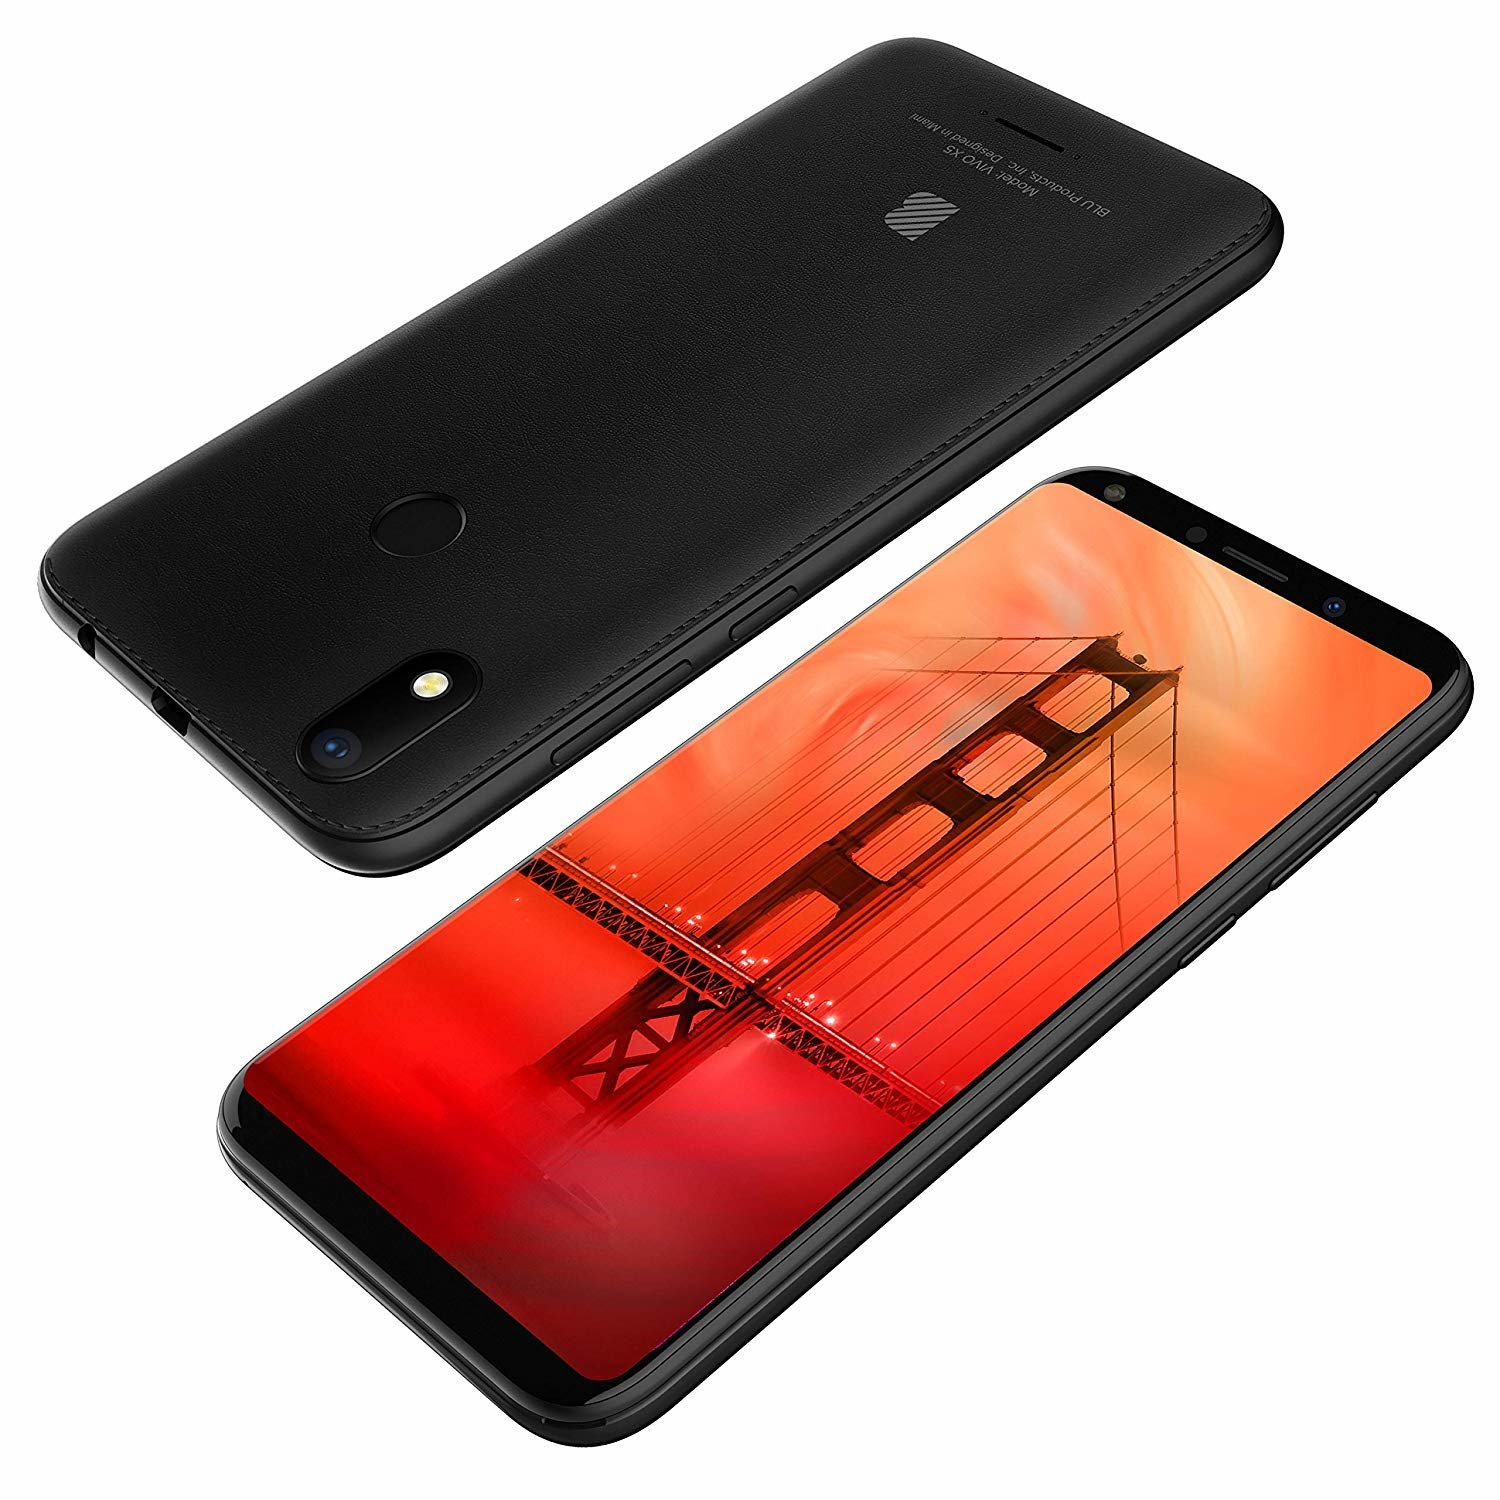 BLU Vivo X5 specifications features and price